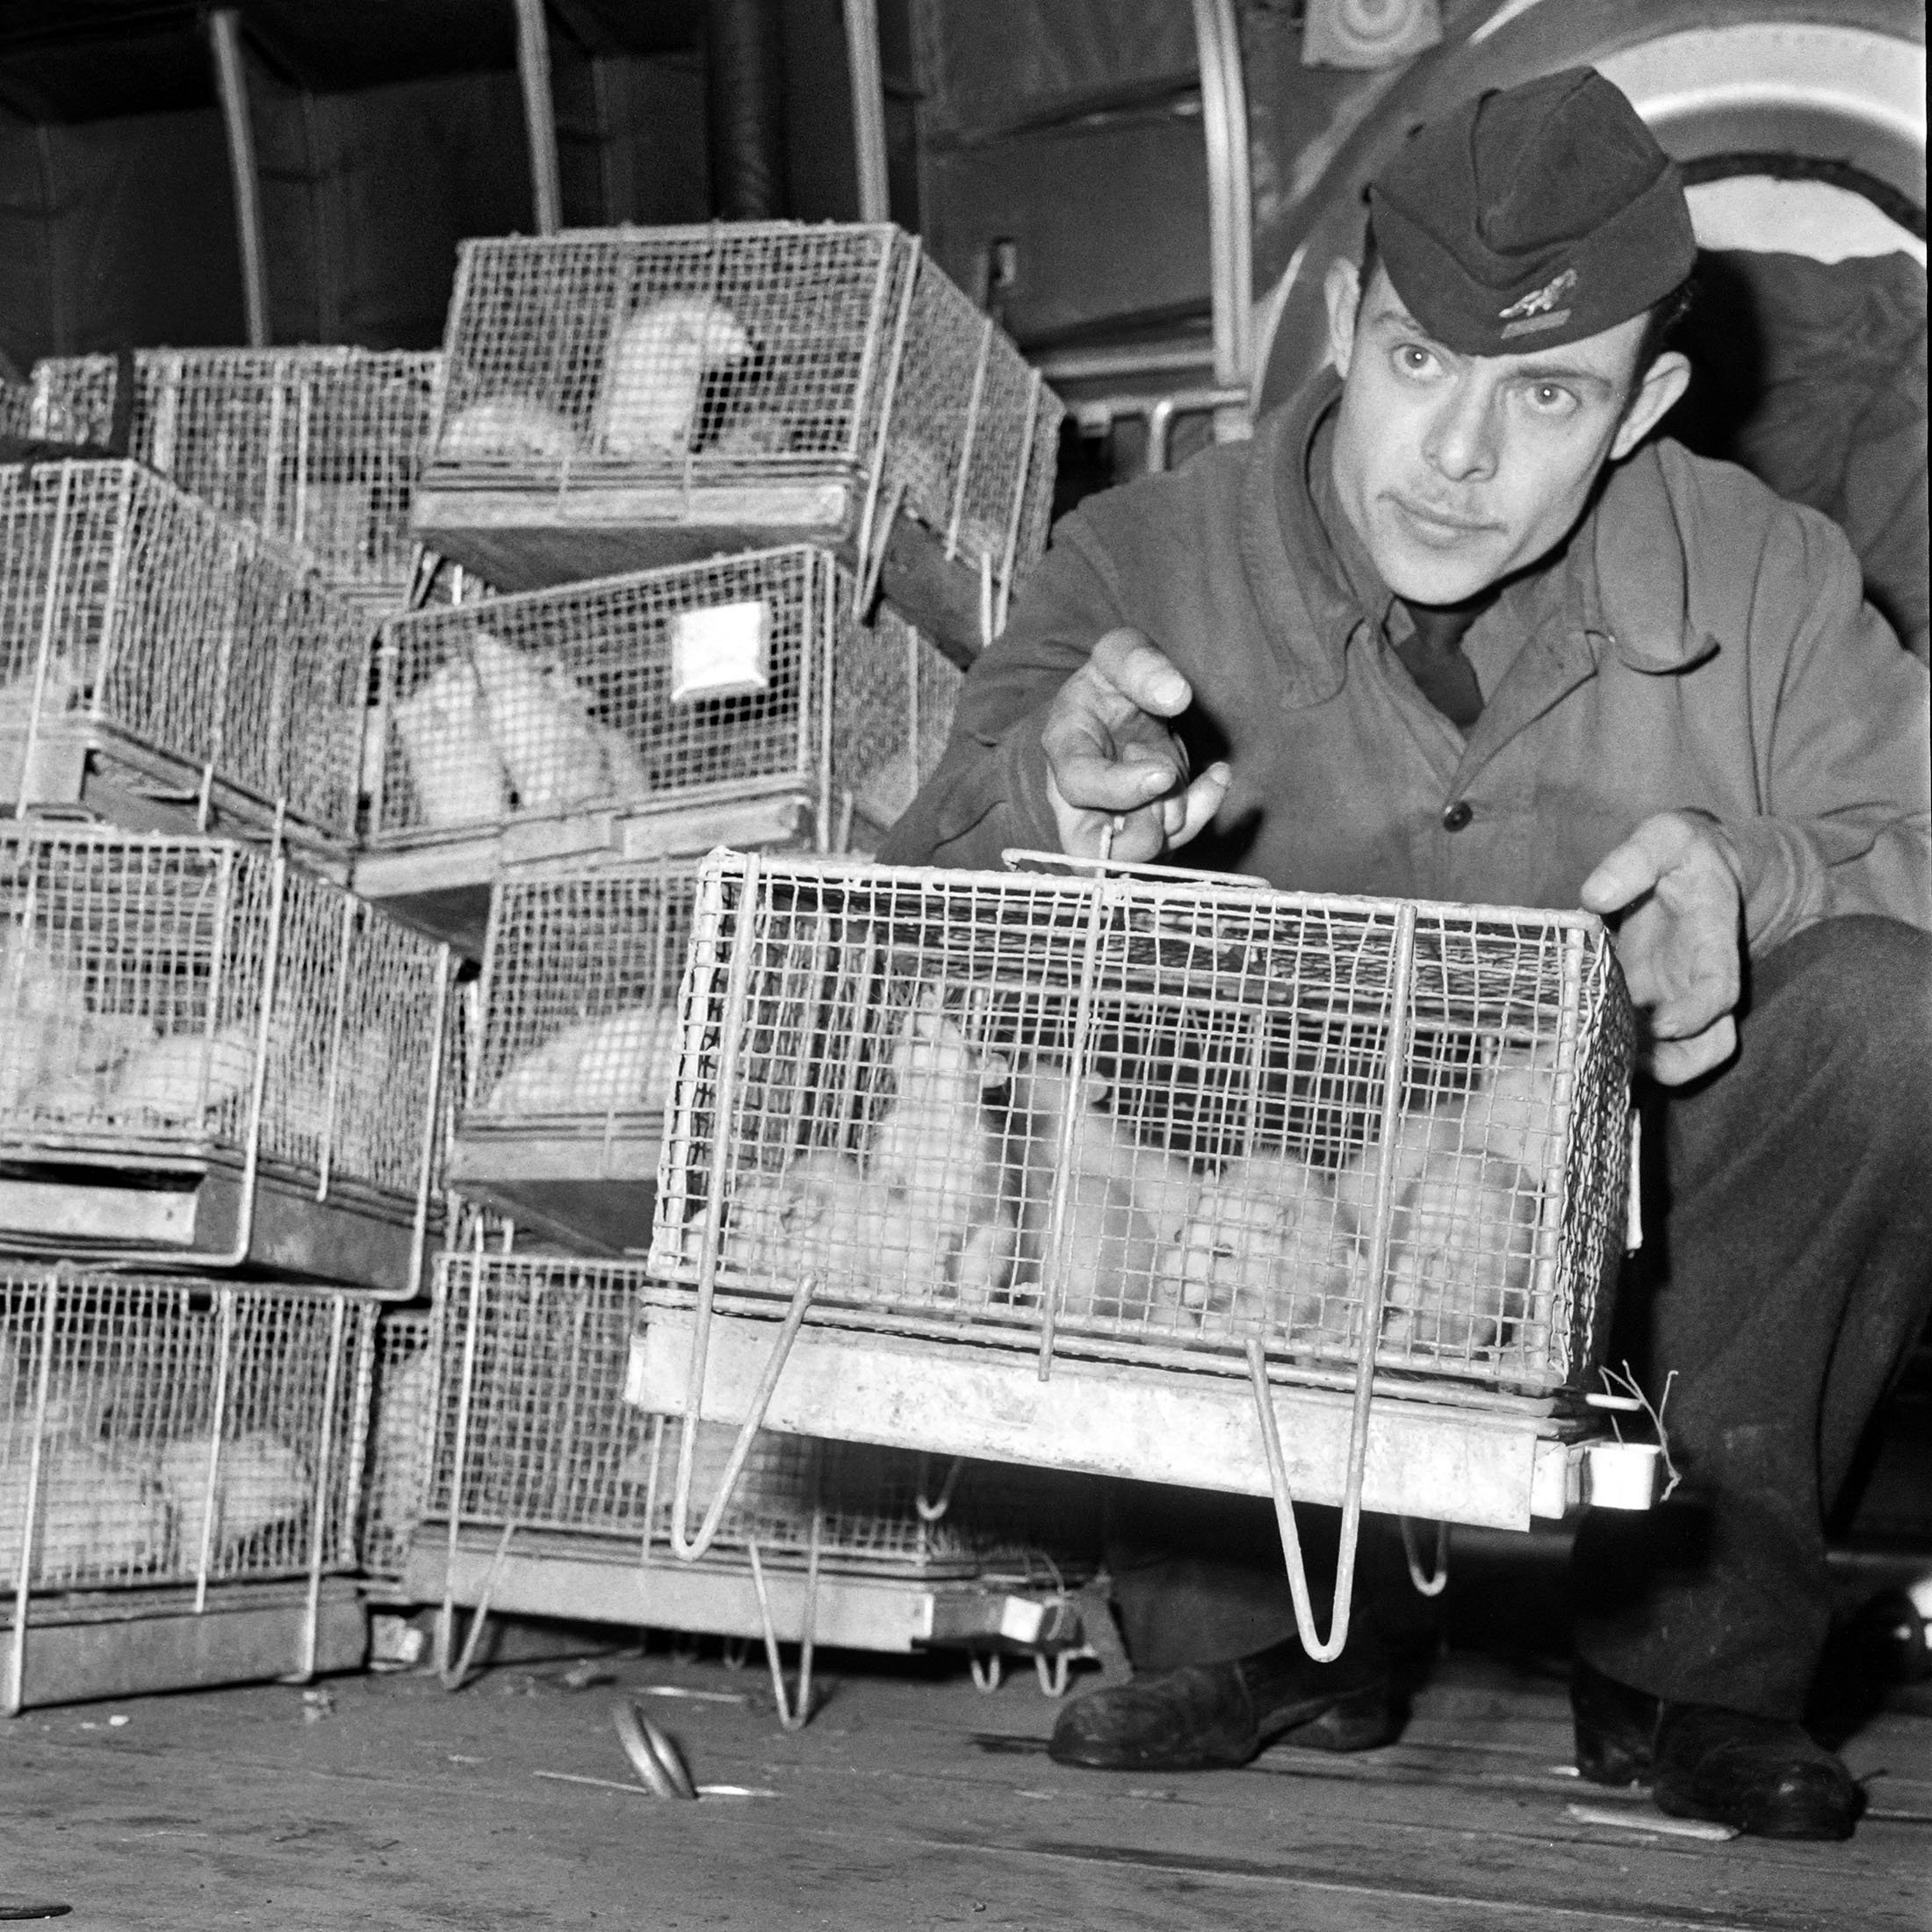 At Le Bourget Paris airport a soldier holds cages of guinea pigs arriving from Reggane, southern Algerian Sahara desert, after they were exposed to the radiations of the third French nuclear test carried out in 1960, Dec. 29, 1960. (AFP Photo)